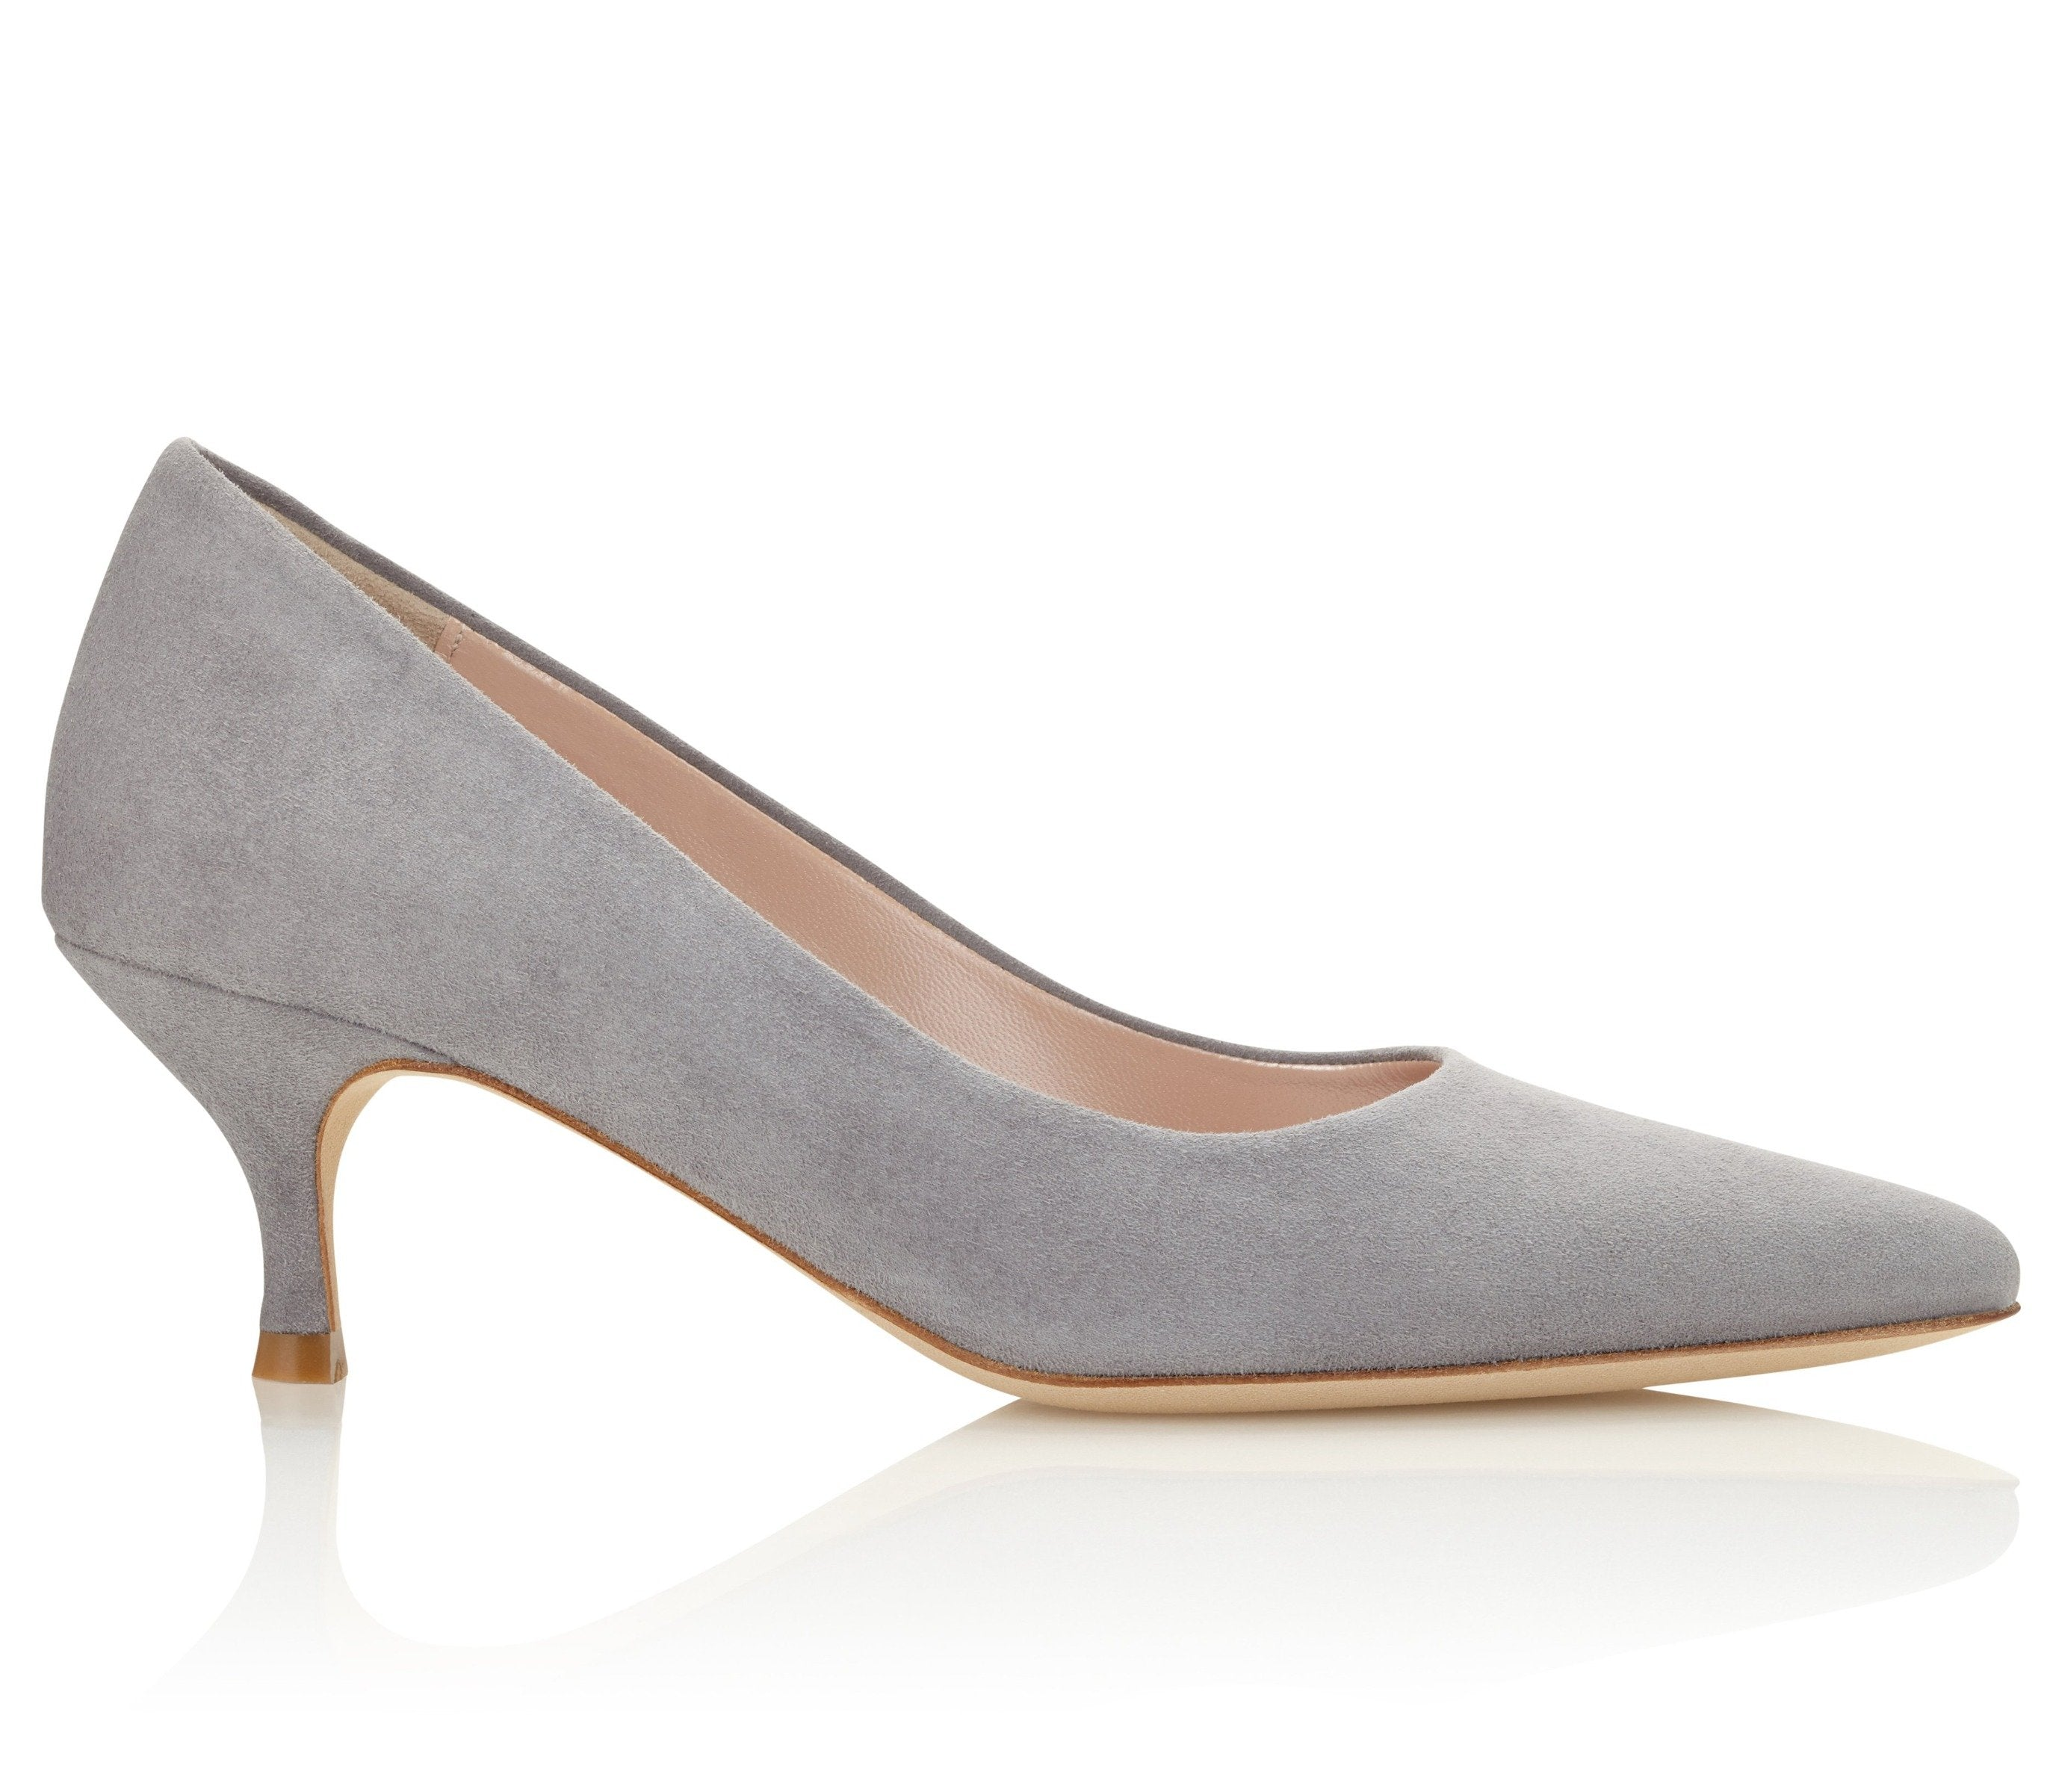 Olivia Kitten heel Suede Court Shoes In Grey Steel Colour By Emmy London